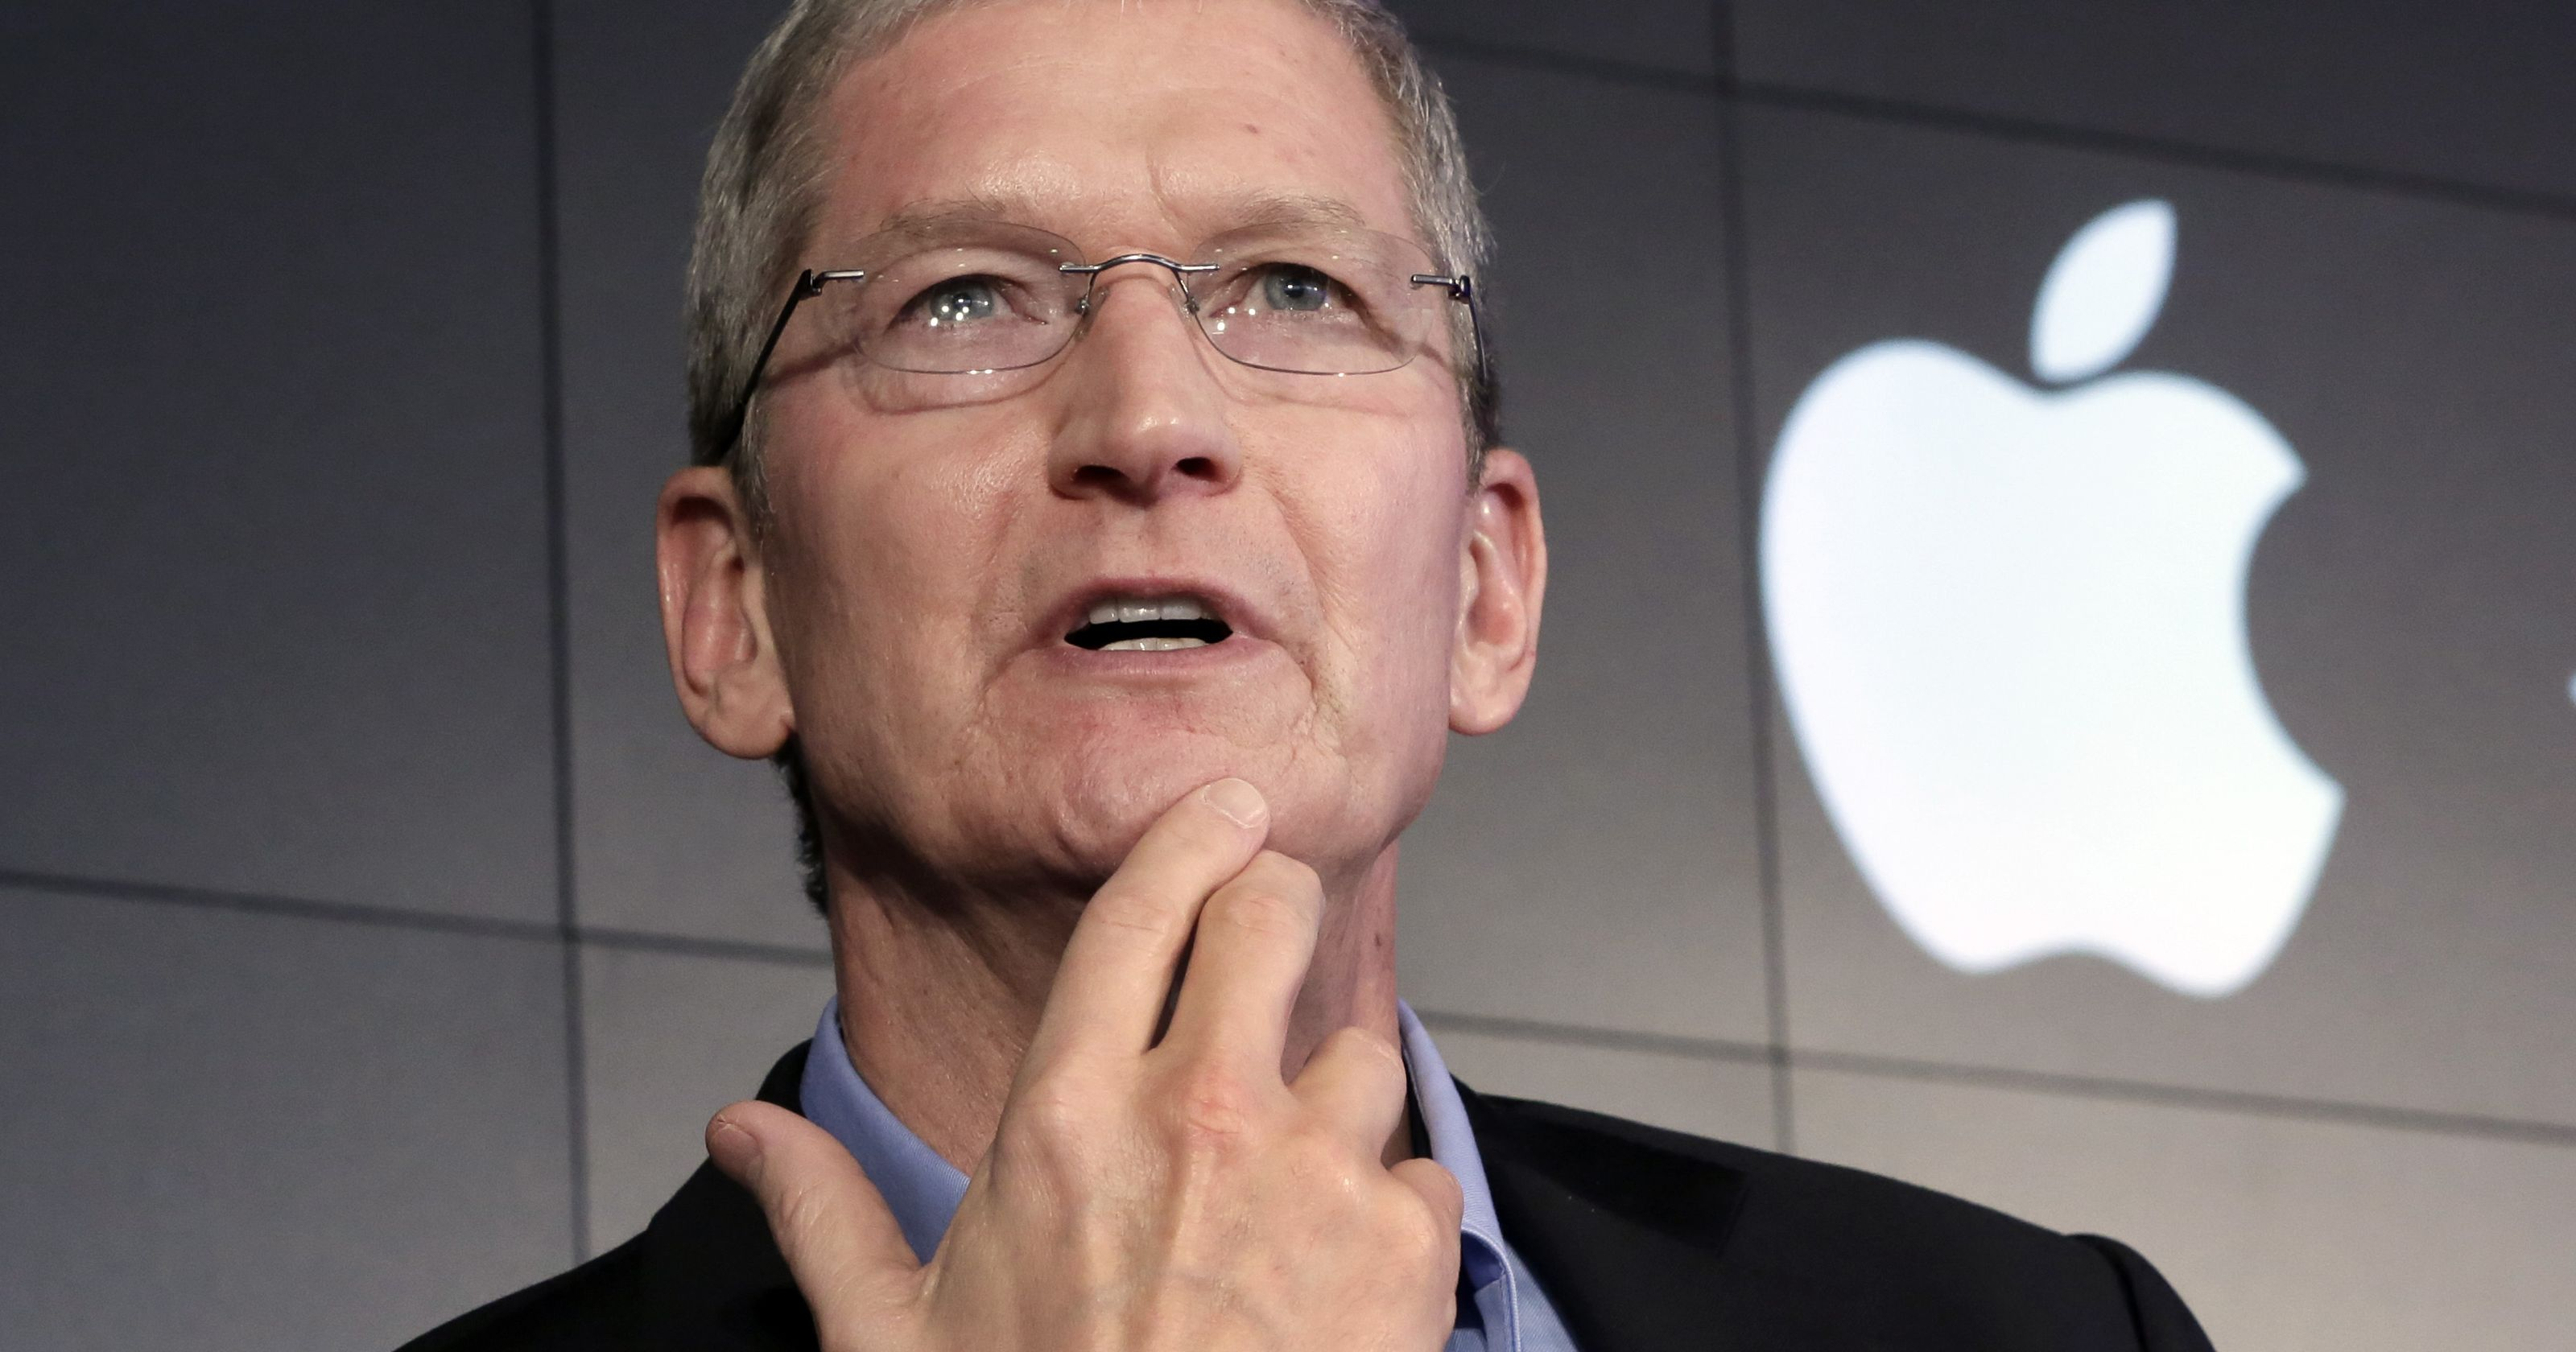 Apple will report its second fiscal quarter on April 25